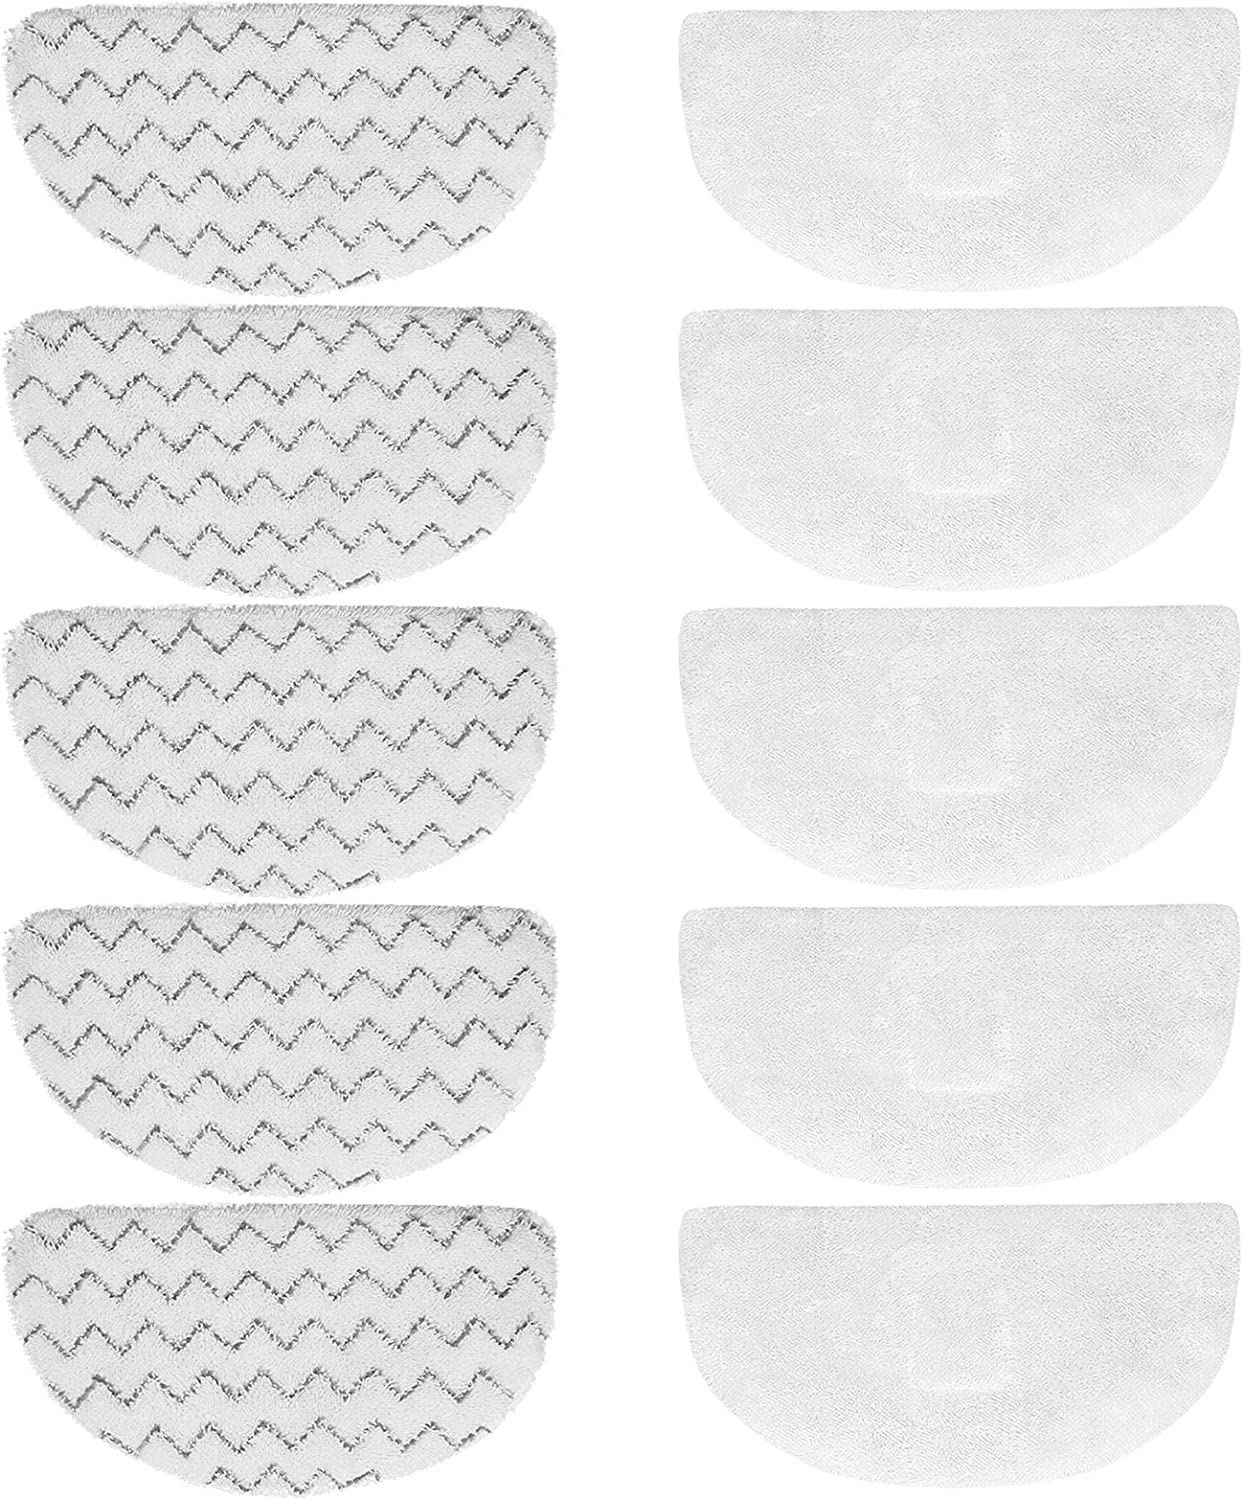 Fort Worth Purchase Mall 10 Pack Replacement Steam Mop for Bissell Powerfresh Pads